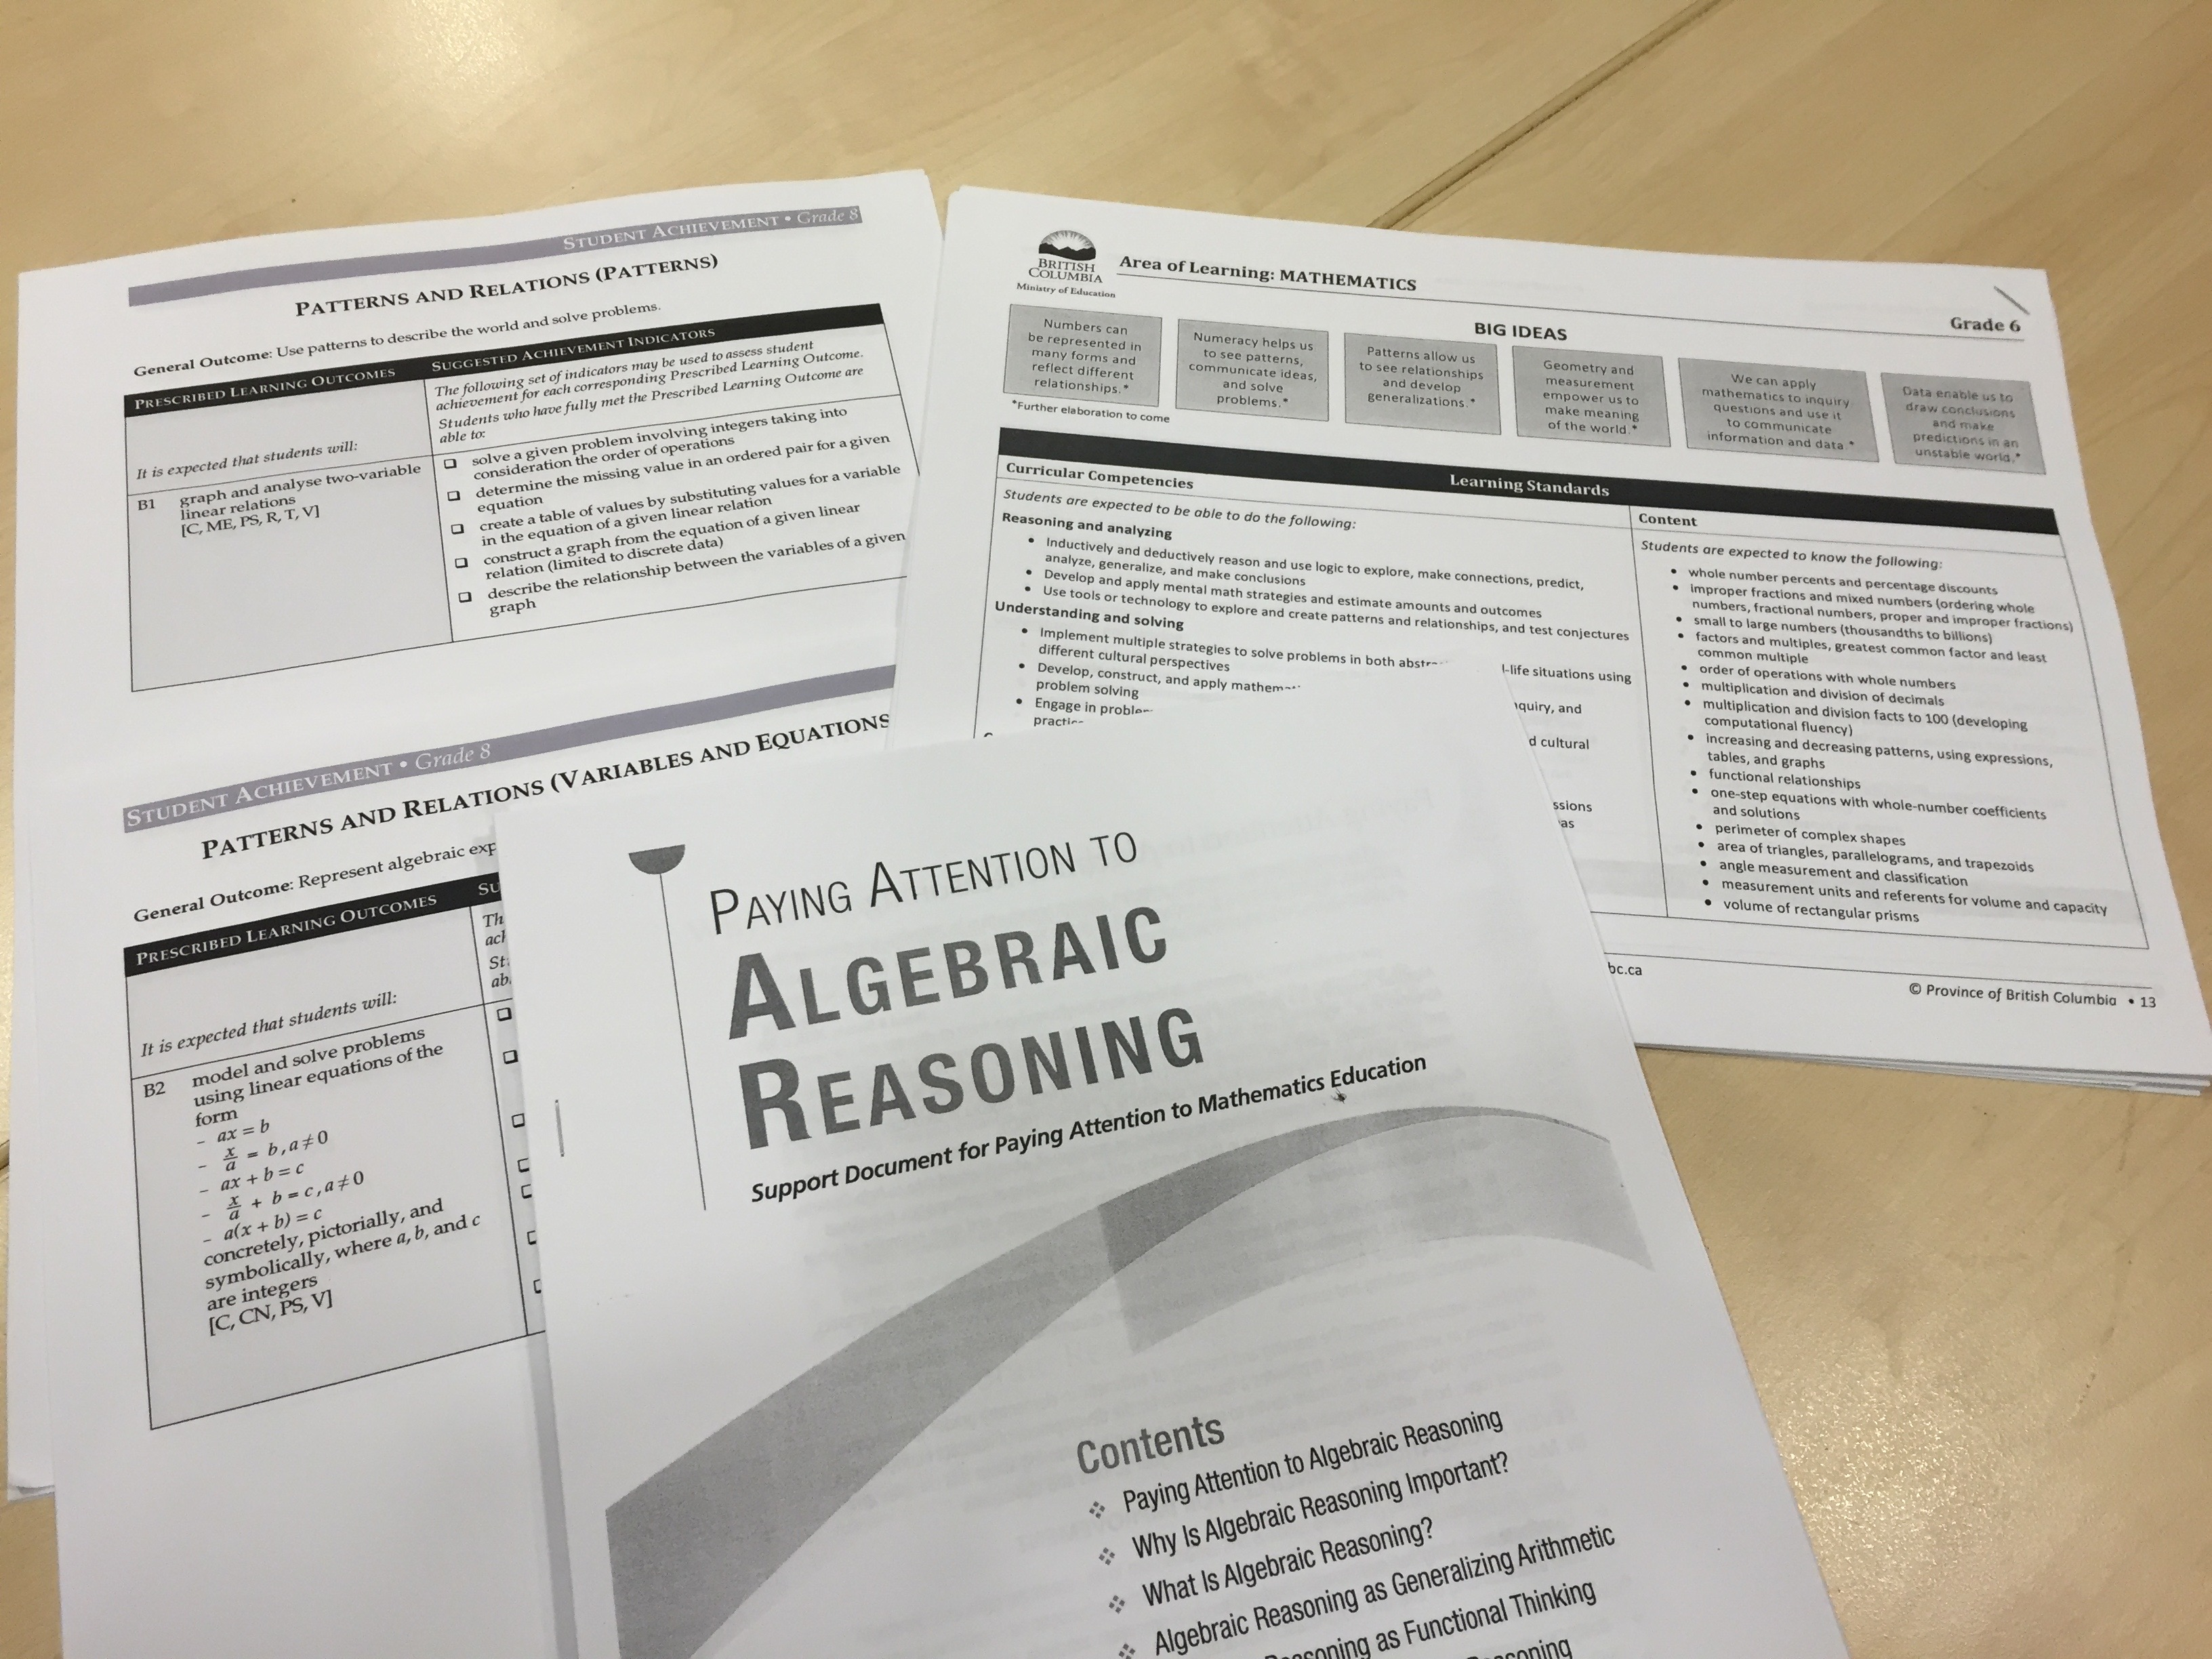 Inclusive Learning Communities Grade 8 Math At Boyd Year Two Mathematics And Science In Sd 38 Richmond [ 2448 x 3264 Pixel ]